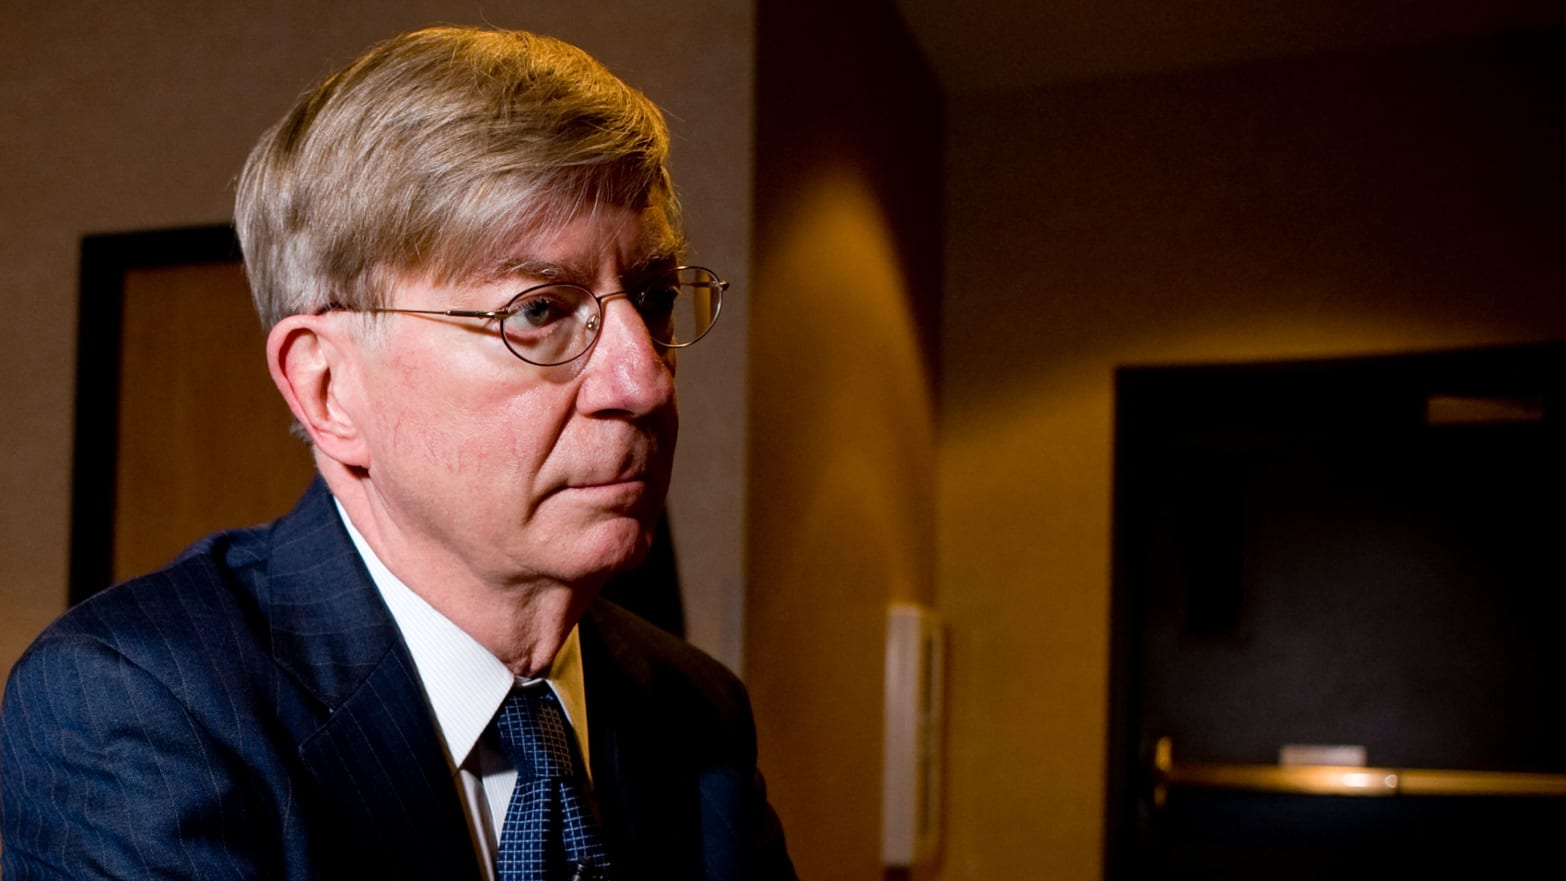 George Will: Conservatives Would Win if Trump Loses